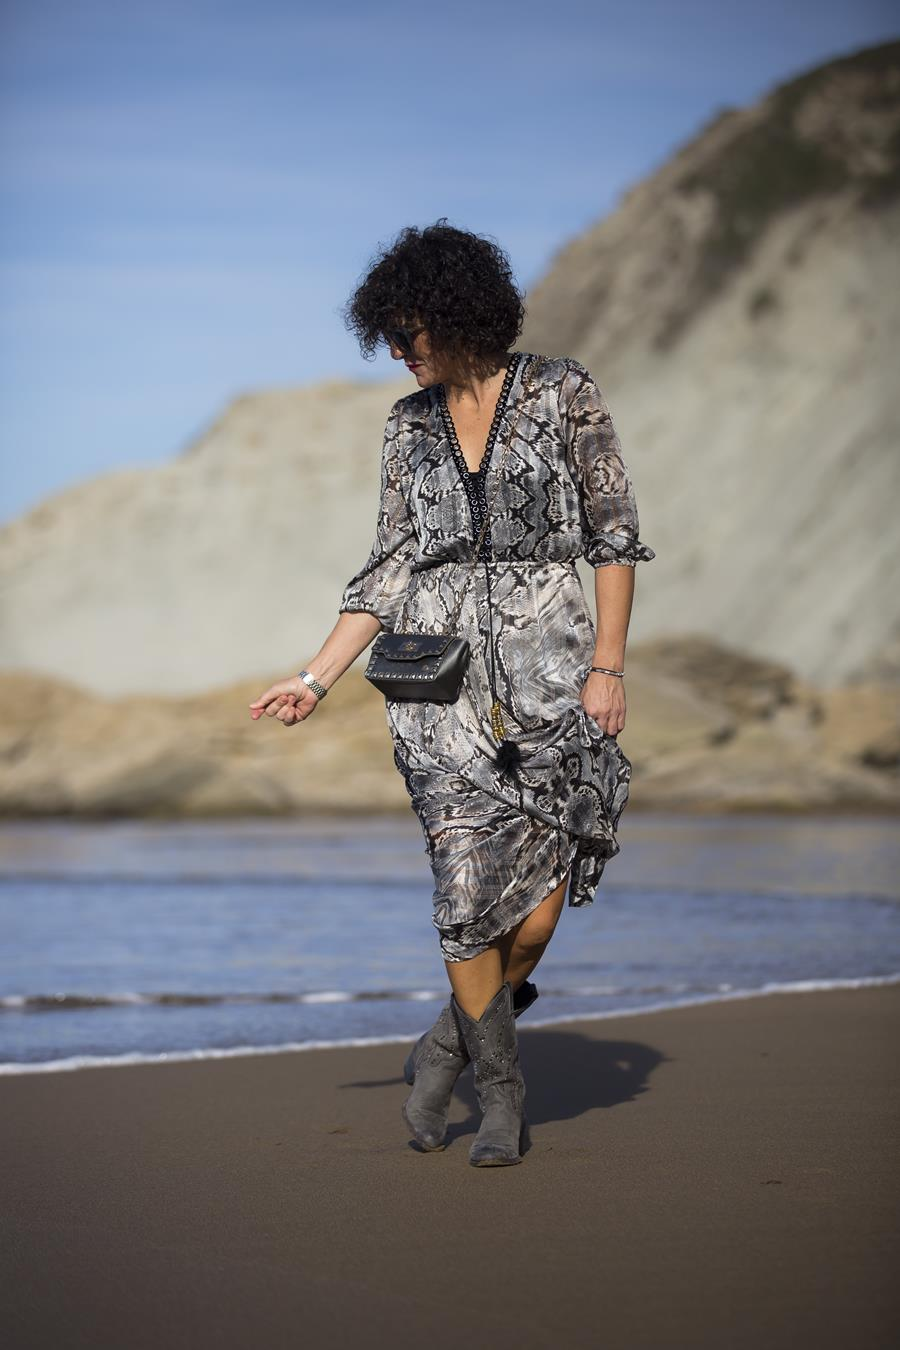 Long dress, maxi vestido, bag, bolso joya, Rebeca Valdivia, Miss Clov, personal shopper, Zumaia, Gipuzkoa, Flich, Booth, Sandra, madehand, madre in spain, artesano, rizos, curls, playa itzurun